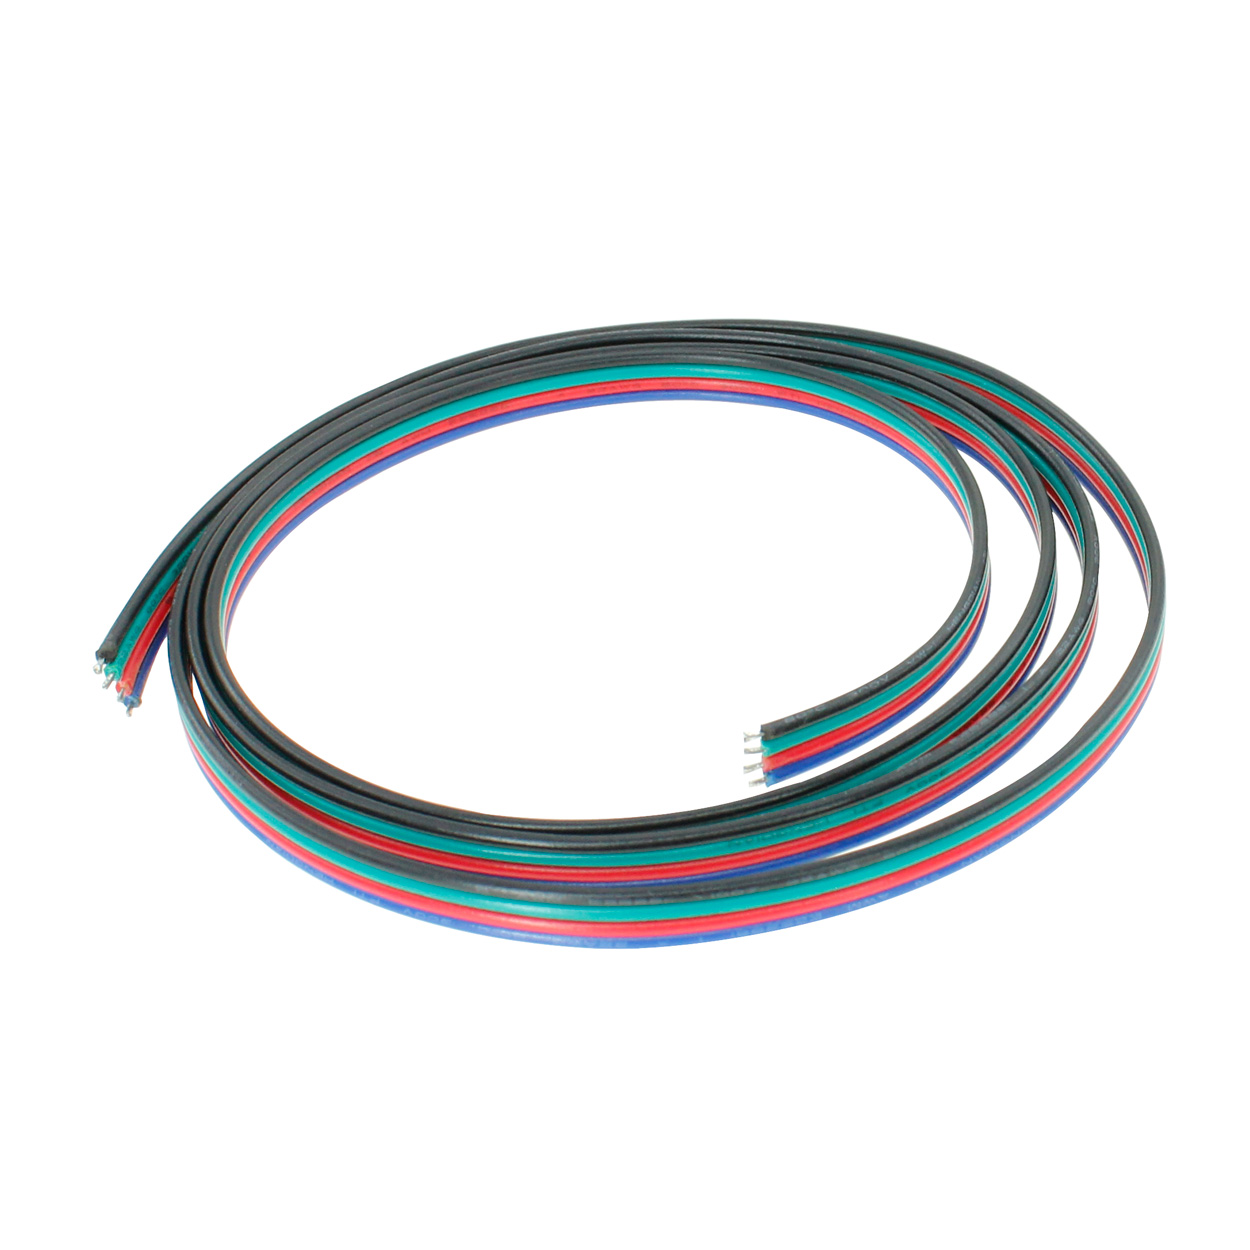 4 wire 18awg power cable for rgb led light strips 20 meter 66ft pi manufacturing [ 1250 x 1250 Pixel ]